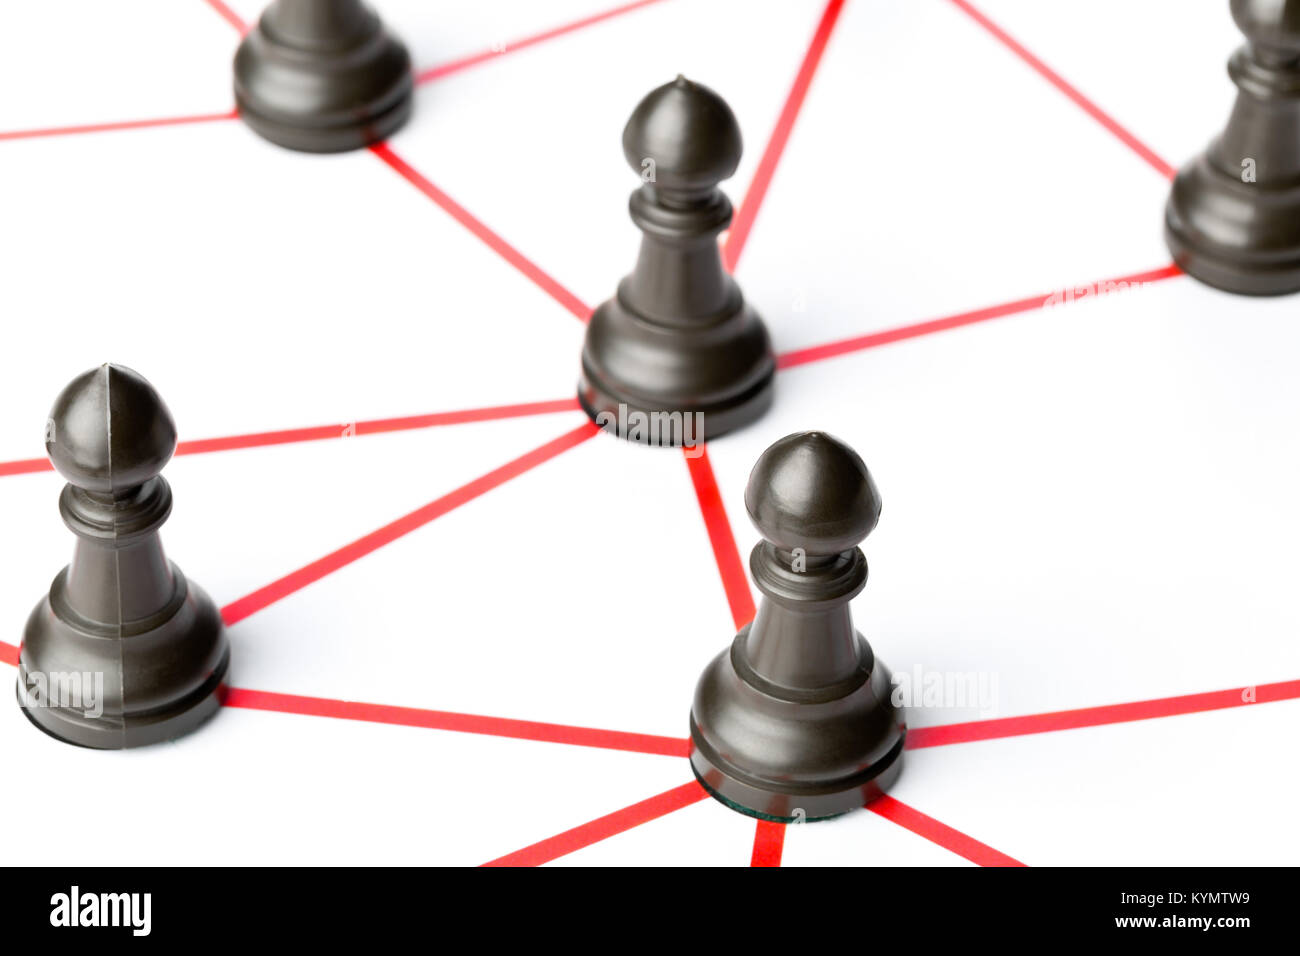 Chess pawn figures connected by red lines over white background - teamwork, connections or social network concept - Stock Image